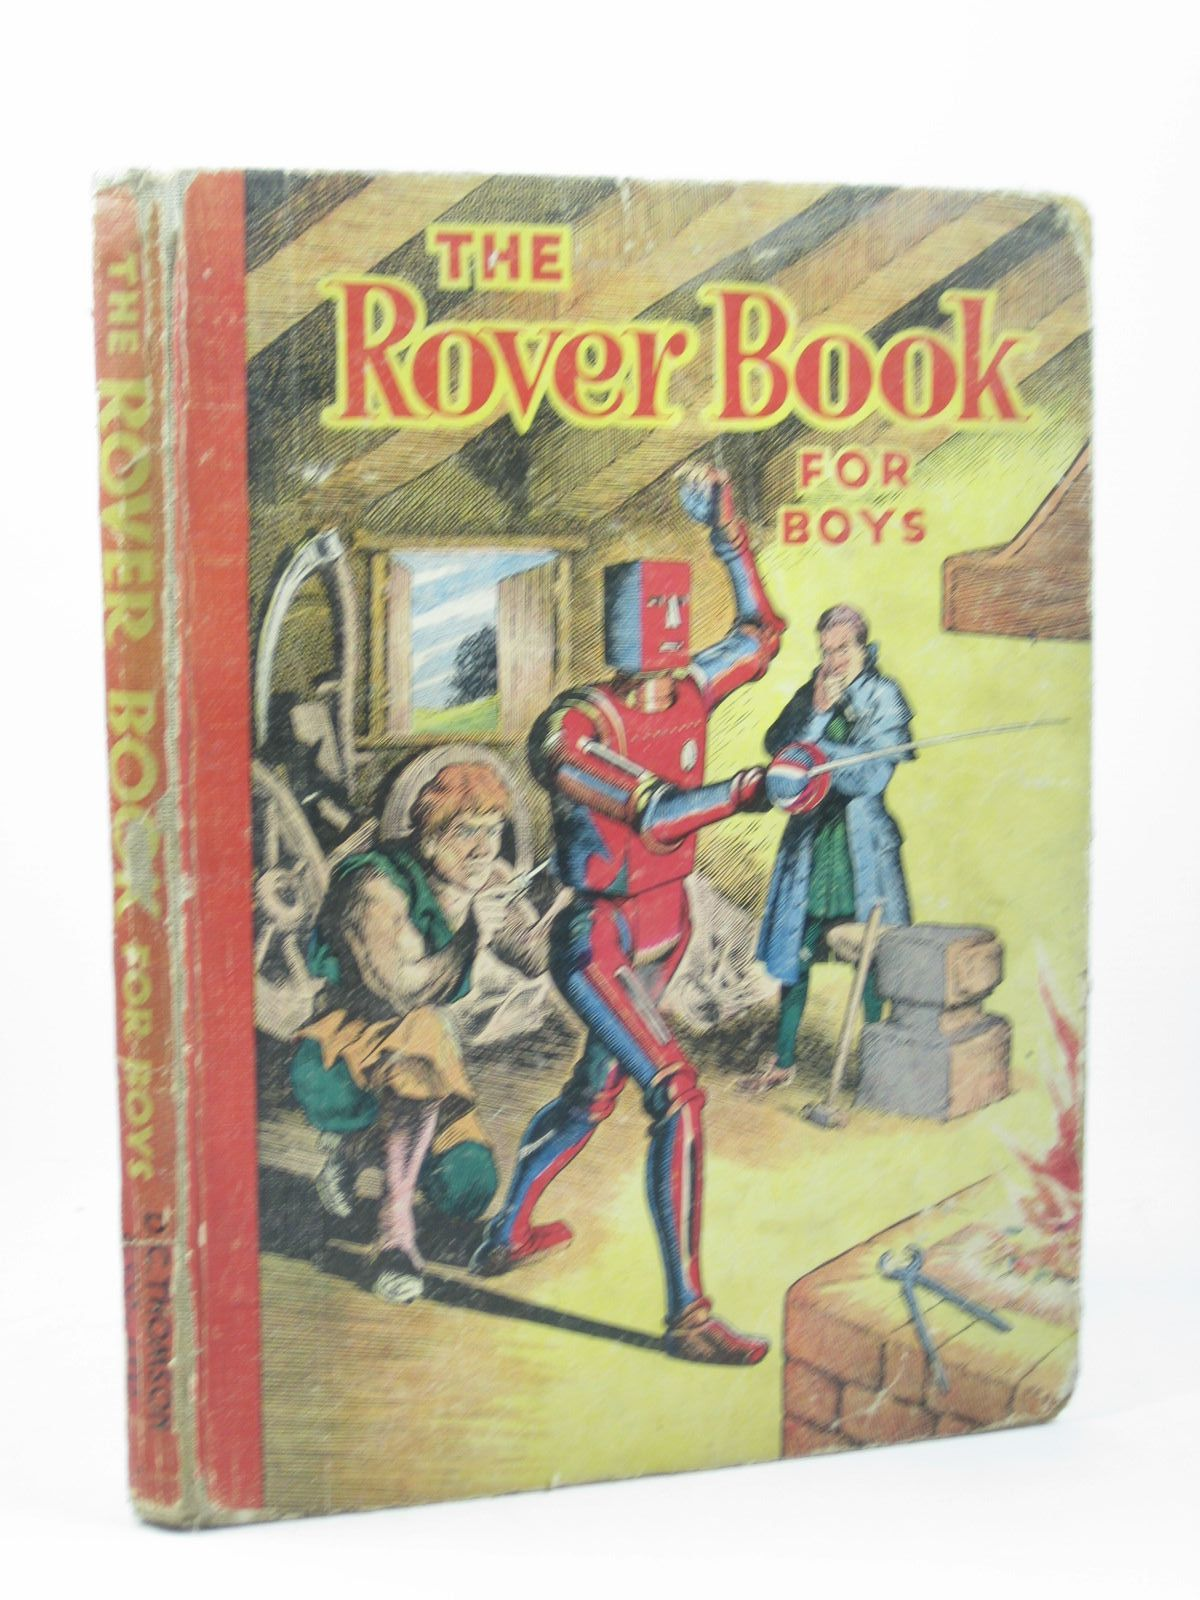 Photo of THE ROVER BOOK FOR BOYS published by D.C. Thomson & Co Ltd. (STOCK CODE: 1312303)  for sale by Stella & Rose's Books